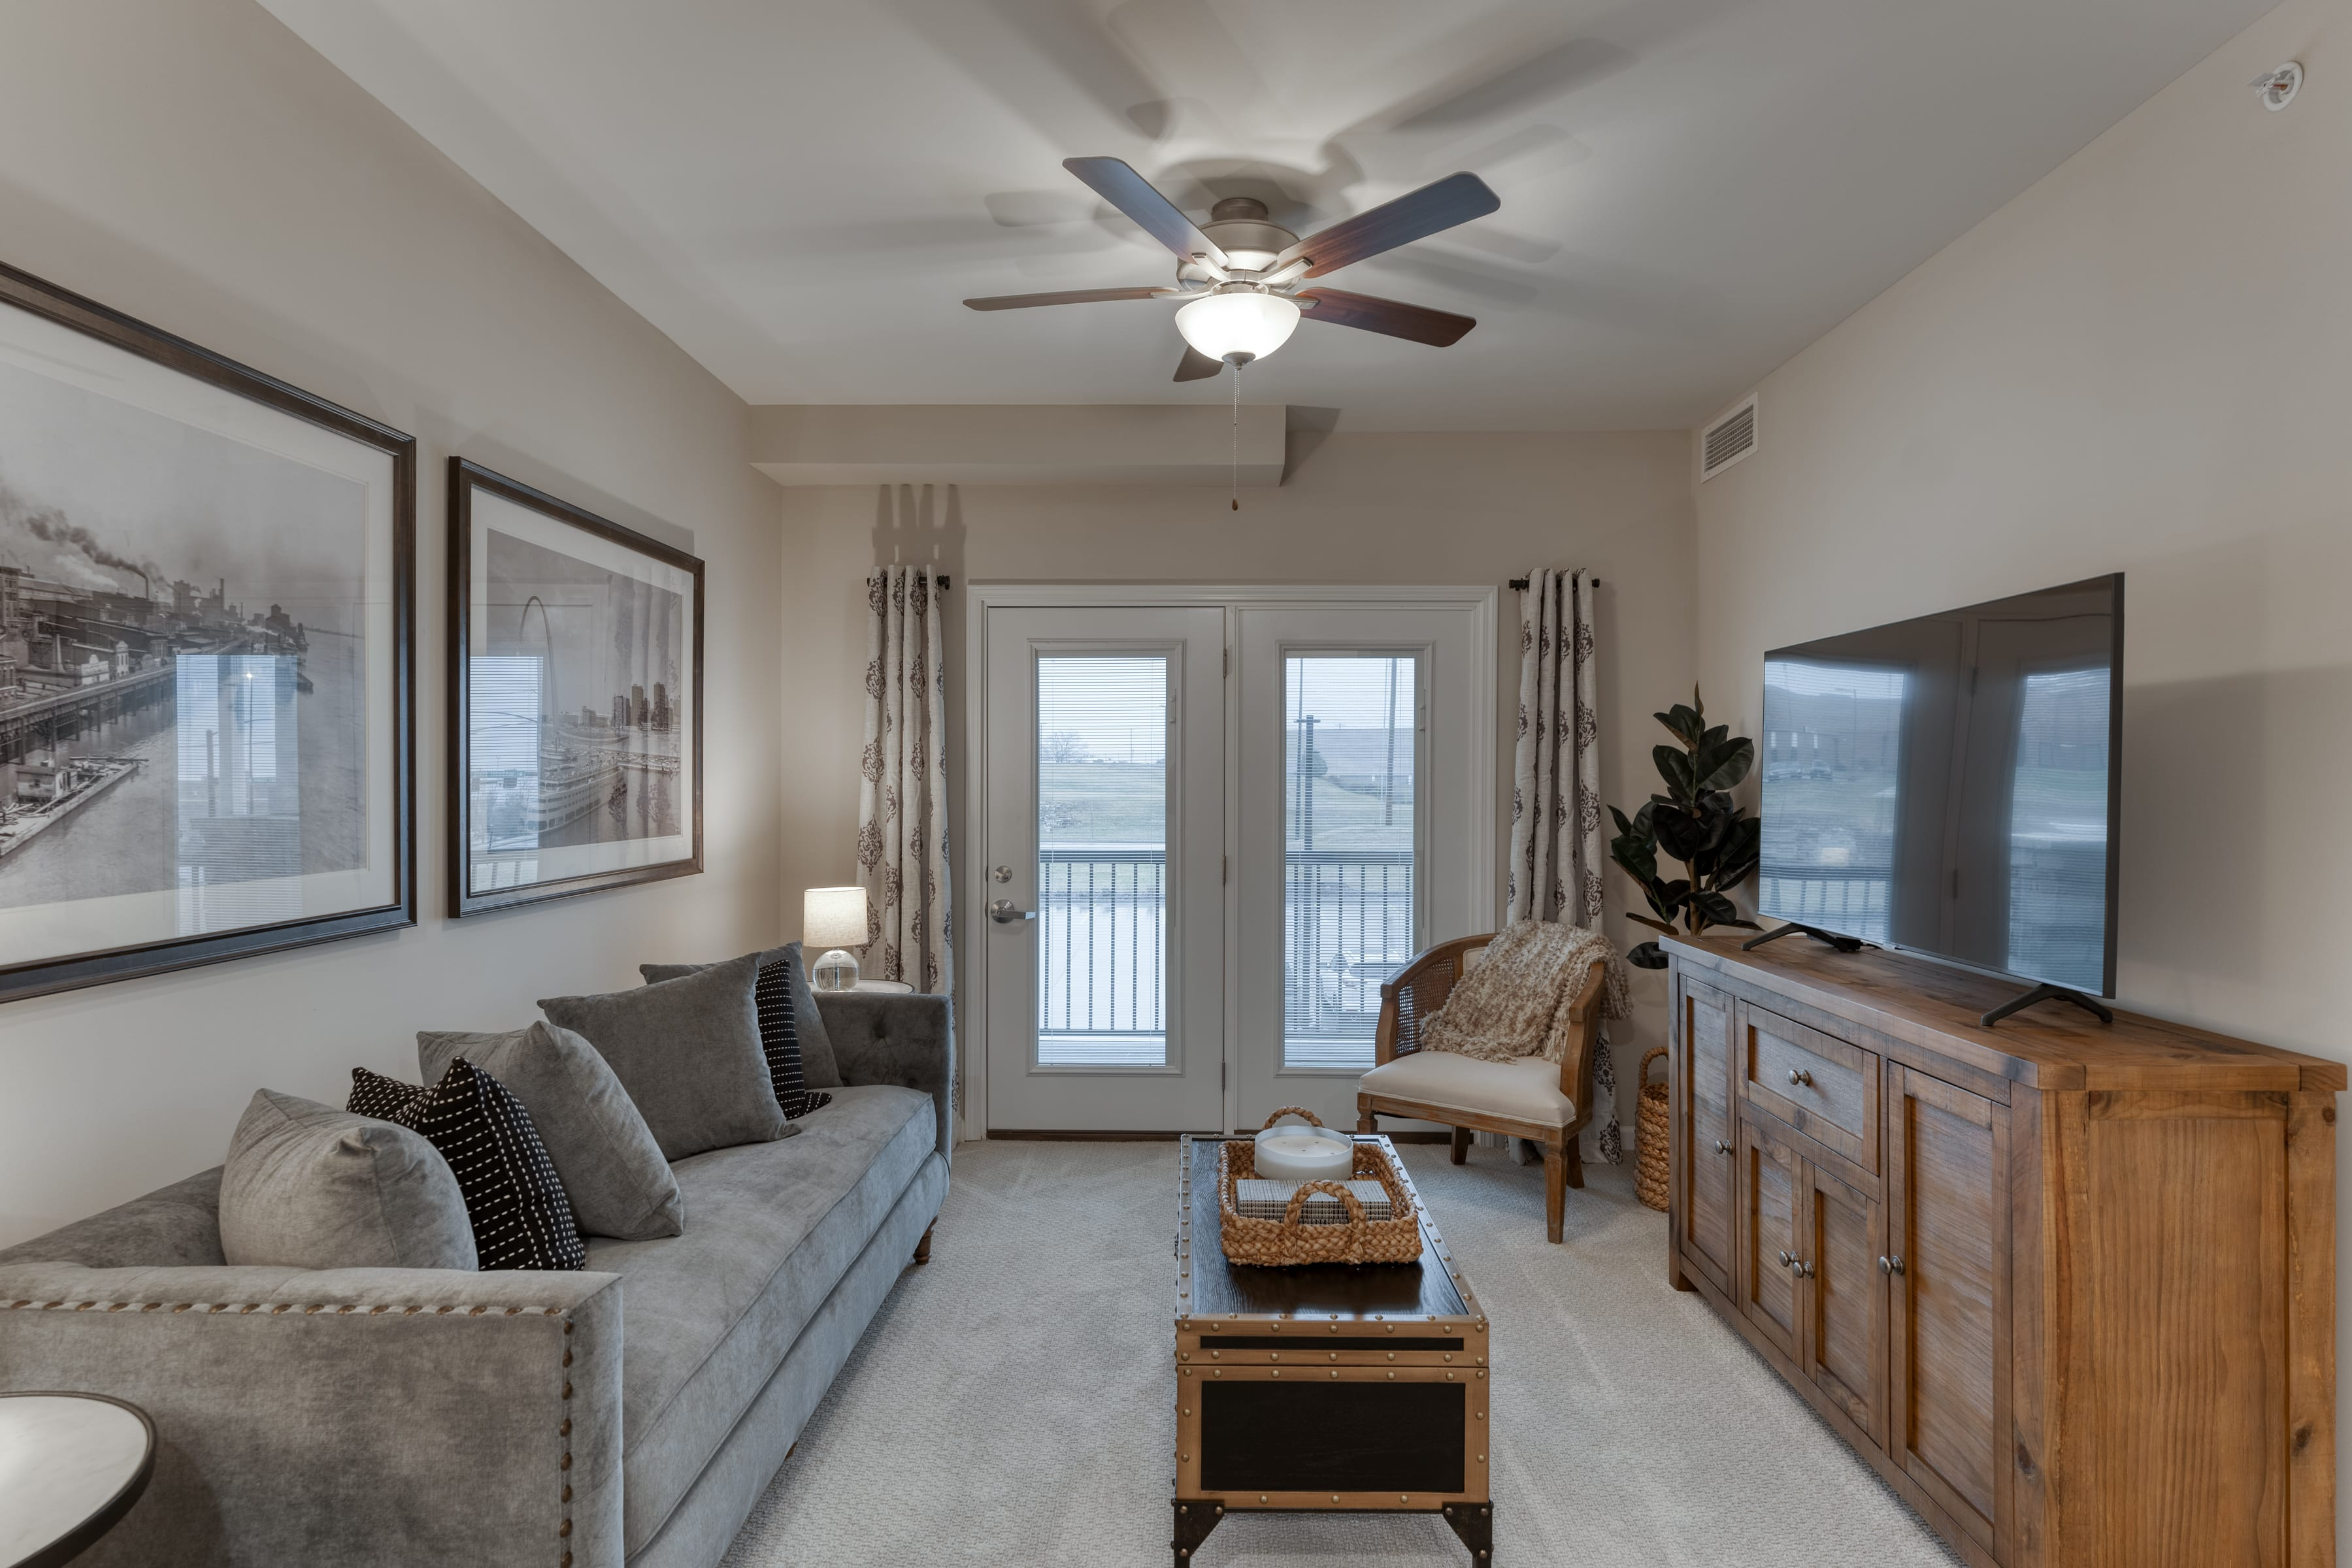 Resident TV areas include sofas and chair seating, as well as a walk-out balcony